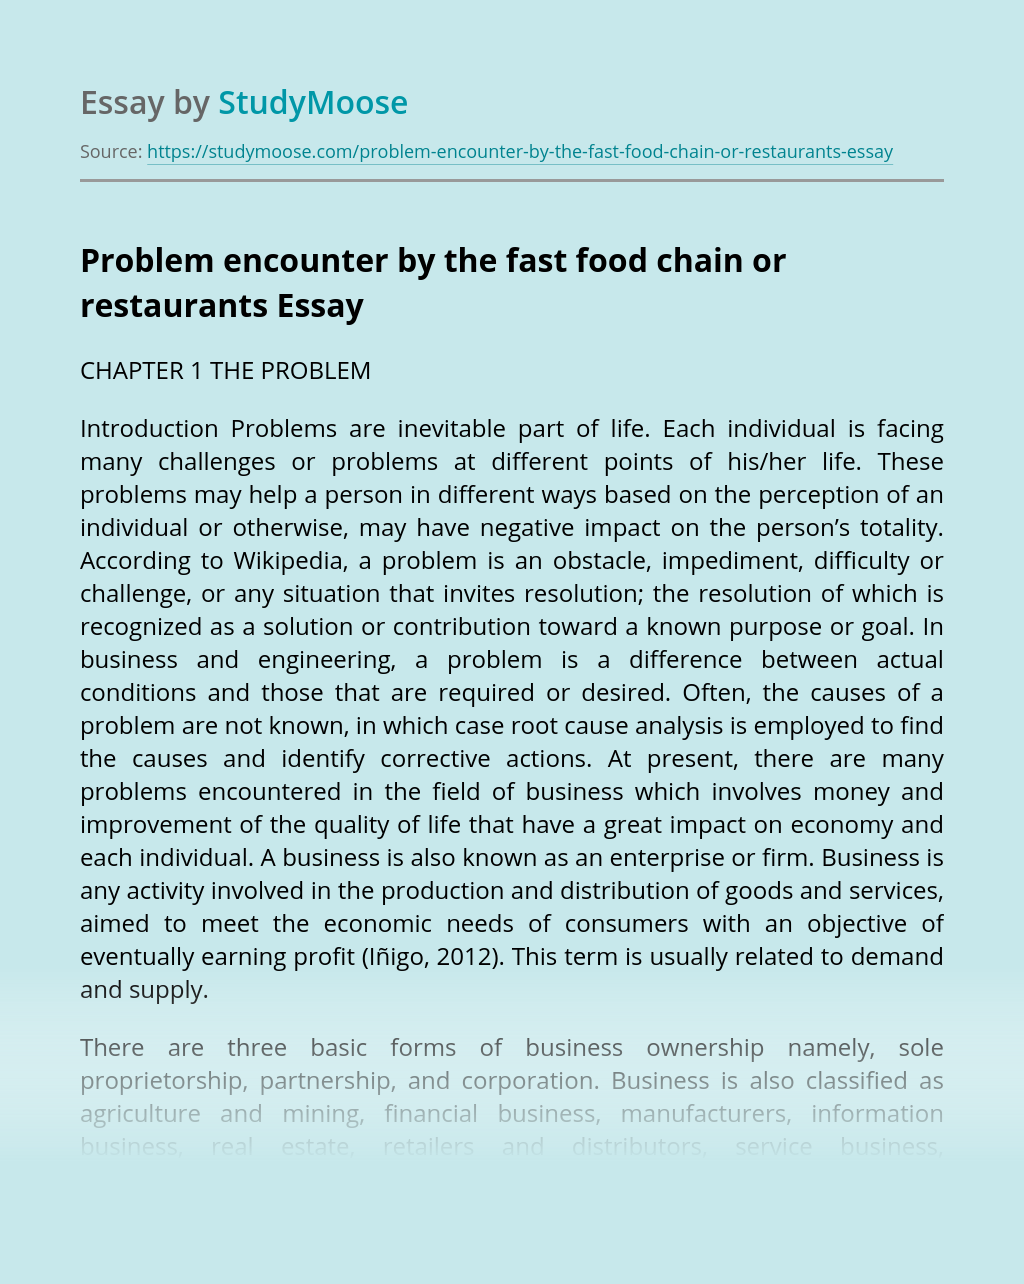 Problem encounter by the fast food chain or restaurants